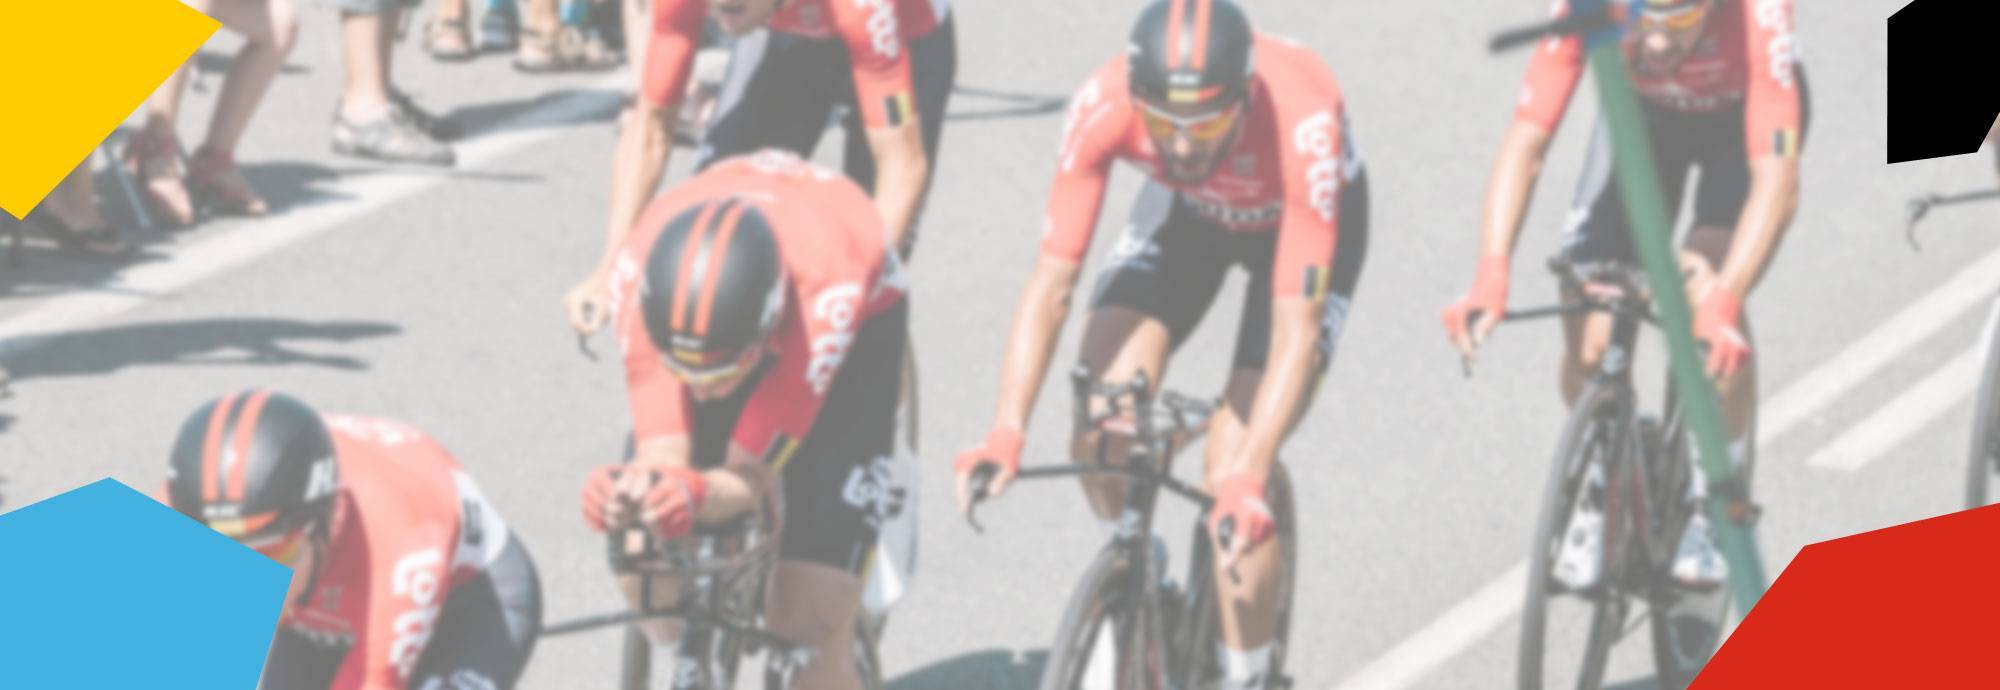 Header: LOTTO SOUDAL